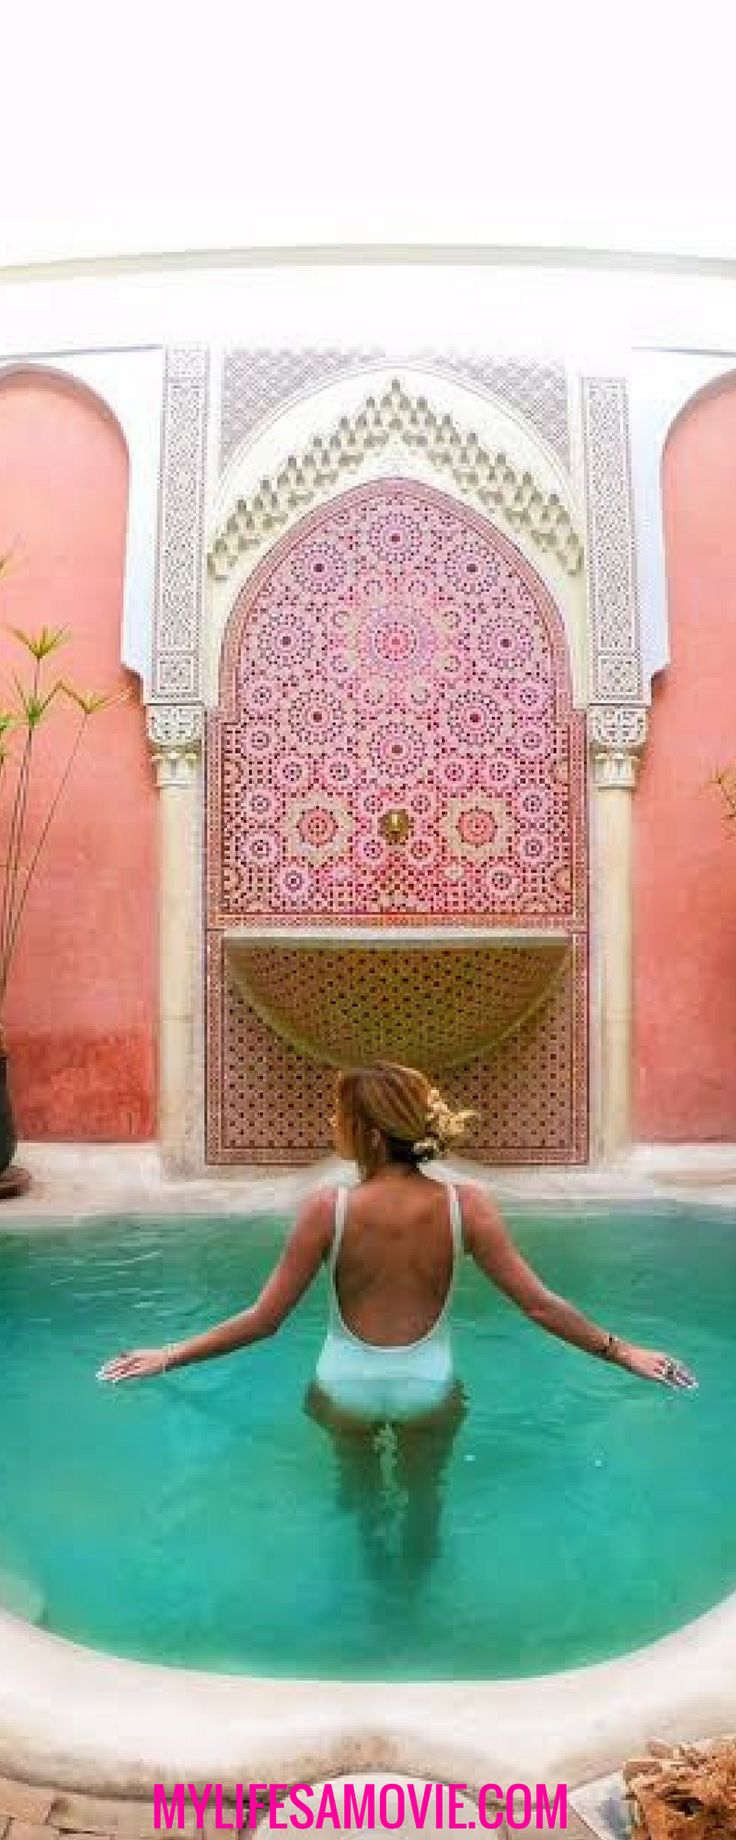 Travel Solo to Morocco with this great list of 6 amazing Moroccan AirBnB riads